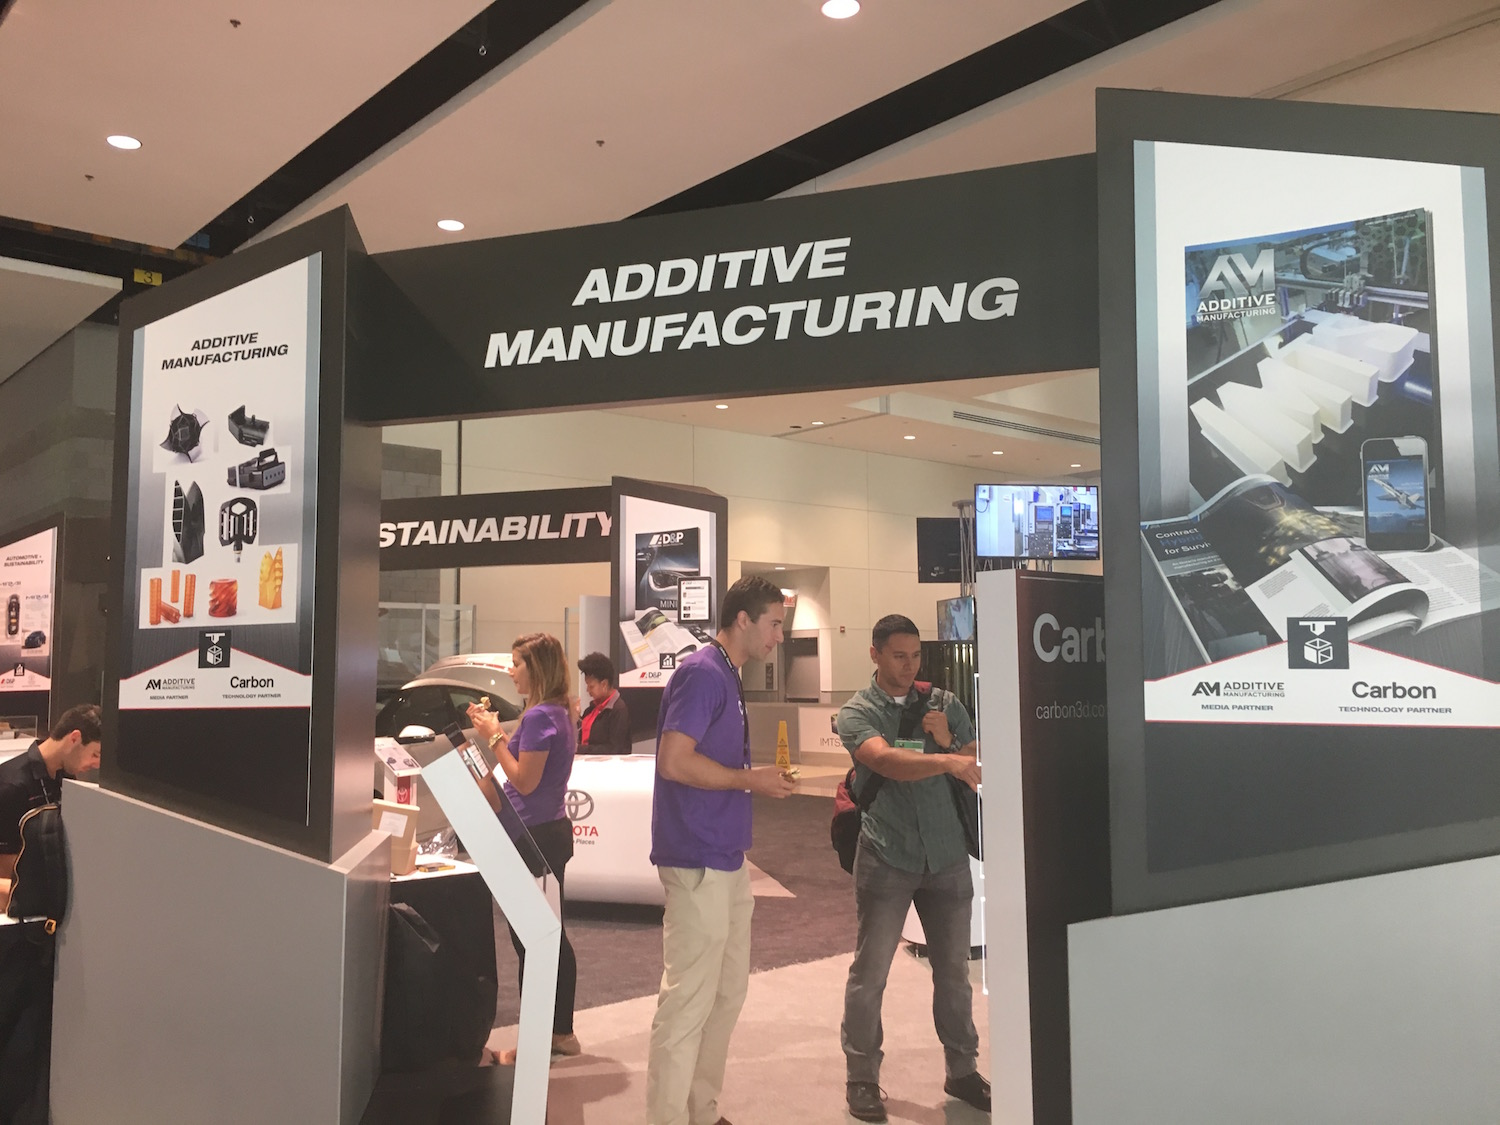 Carbon's stand at IMTS